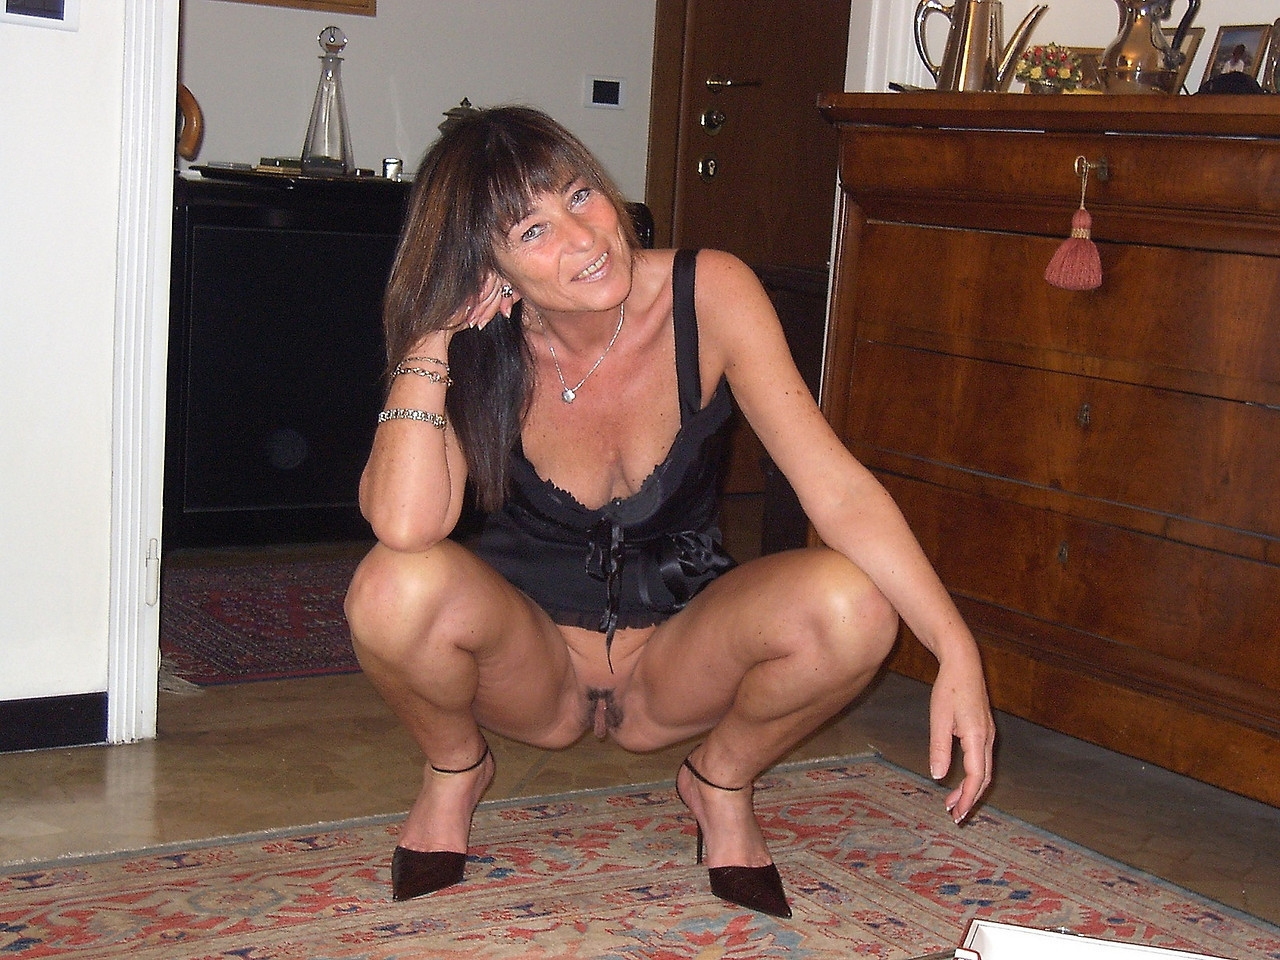 Mature amateur women videos-4645